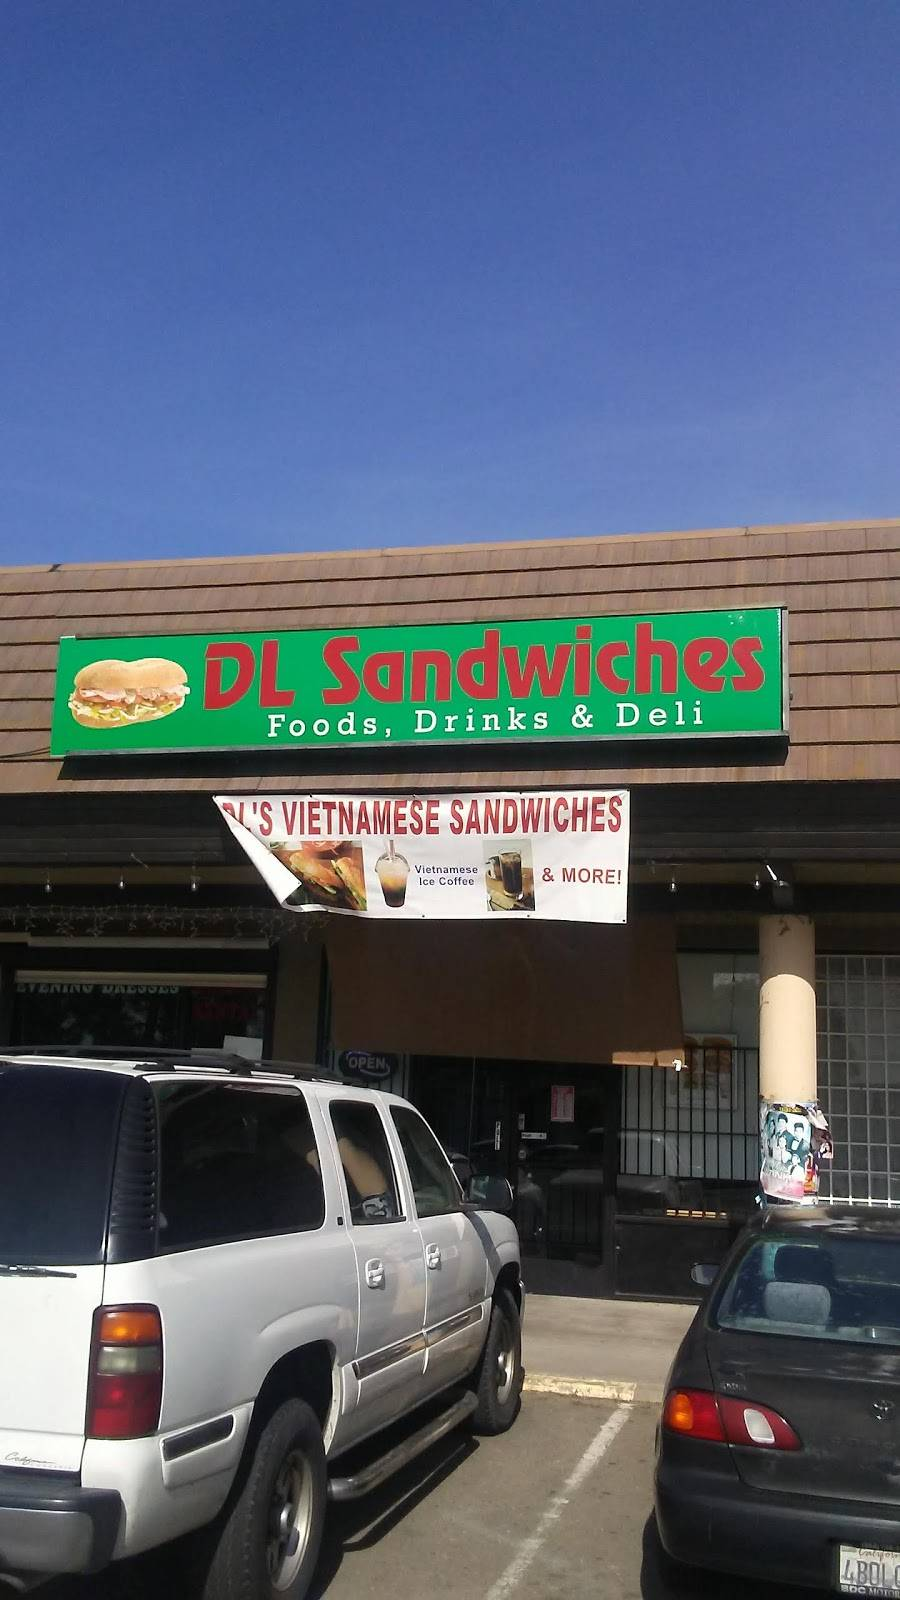 DL Sandwiches - restaurant  | Photo 3 of 10 | Address: 7912 N El Dorado St, Stockton, CA 95210, USA | Phone: (209) 451-4295